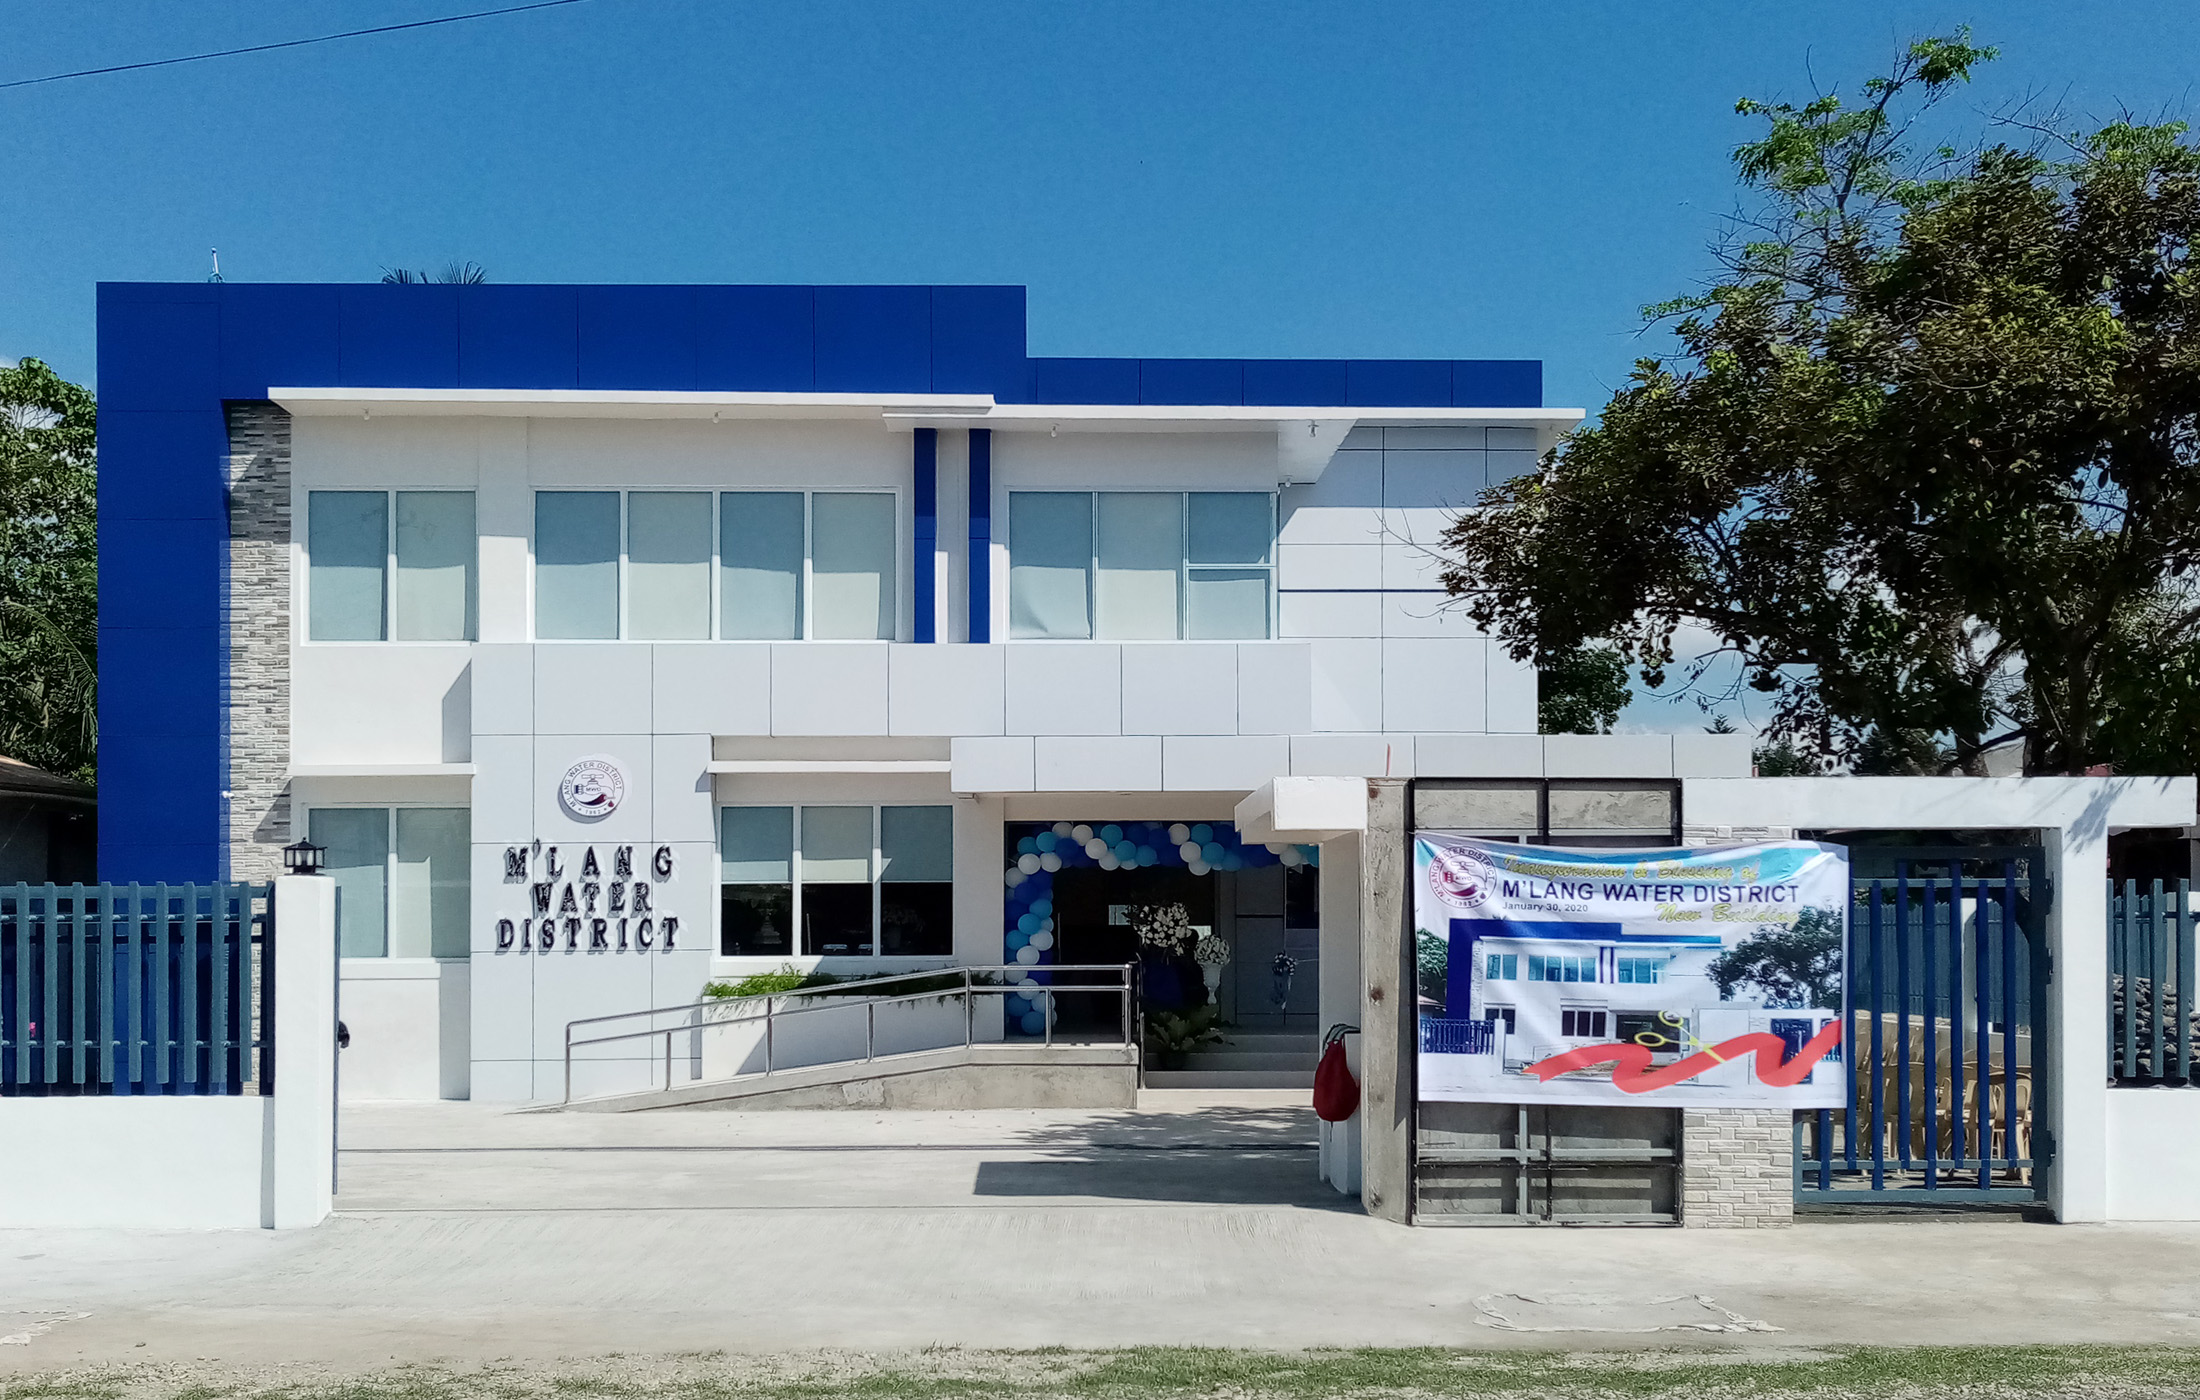 district office